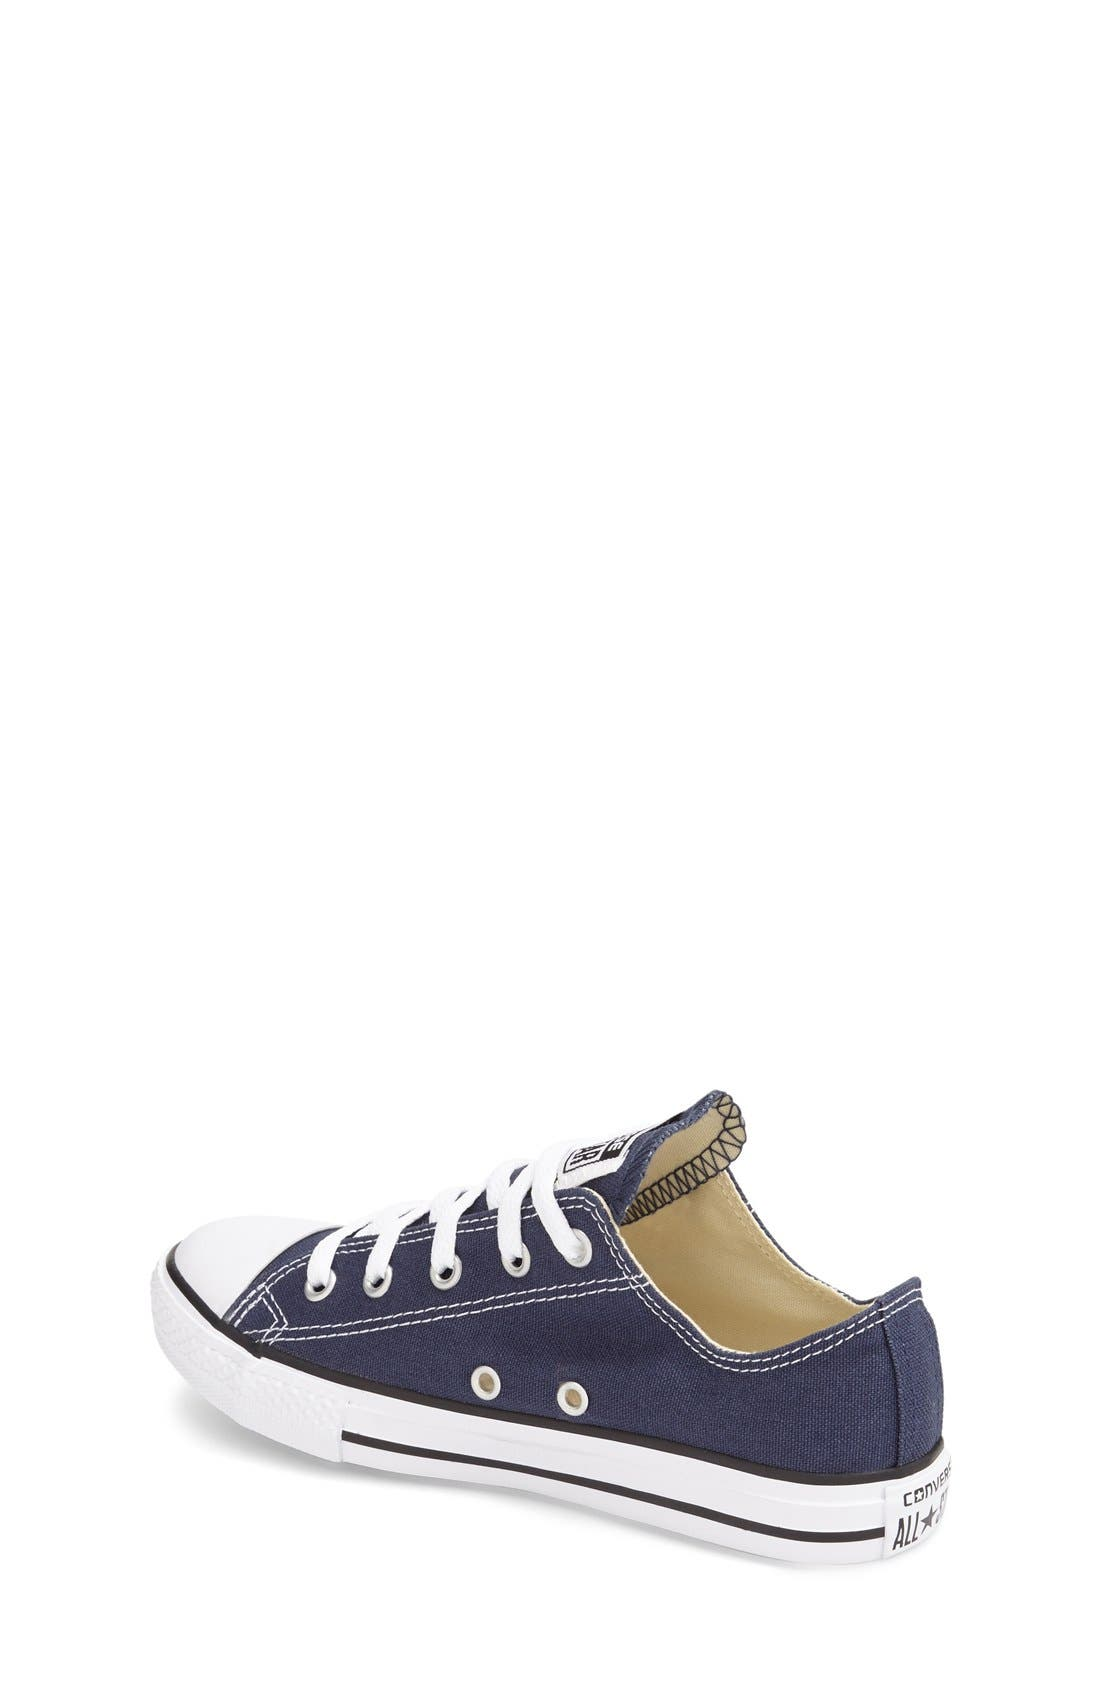 Alternate Image 2  - Converse Chuck Taylor® Sneaker (Toddler, Little Kid & Big Kid)